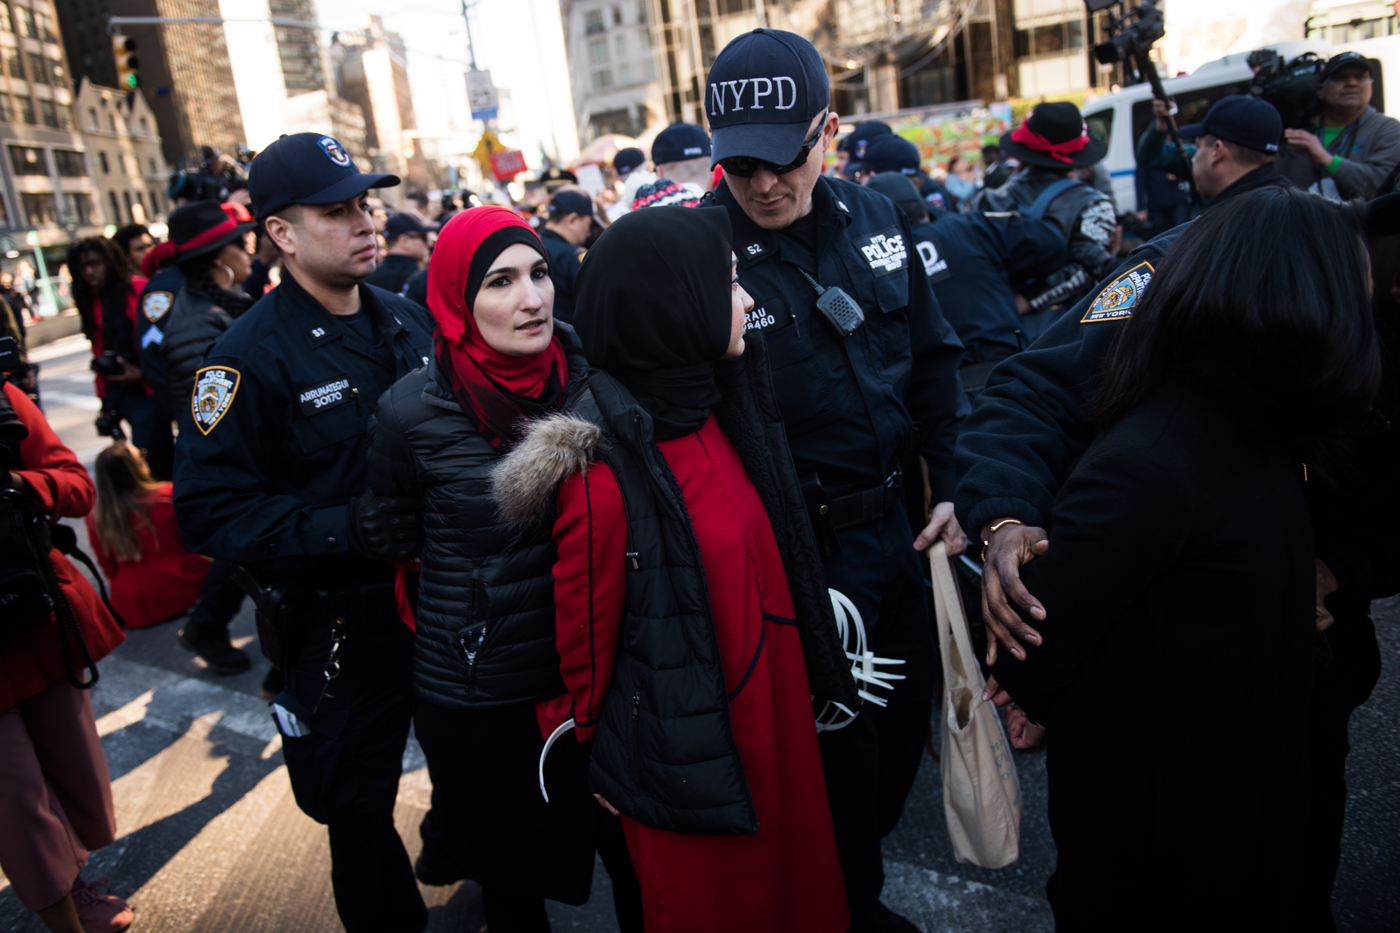 Linda Sarsour, left, is arrested for blocking traffic in Columbus Circle during an International Women's Day rally and march in New York, NY on March 8, 2017. CREDIT: Mark Kauzlarich for CNN